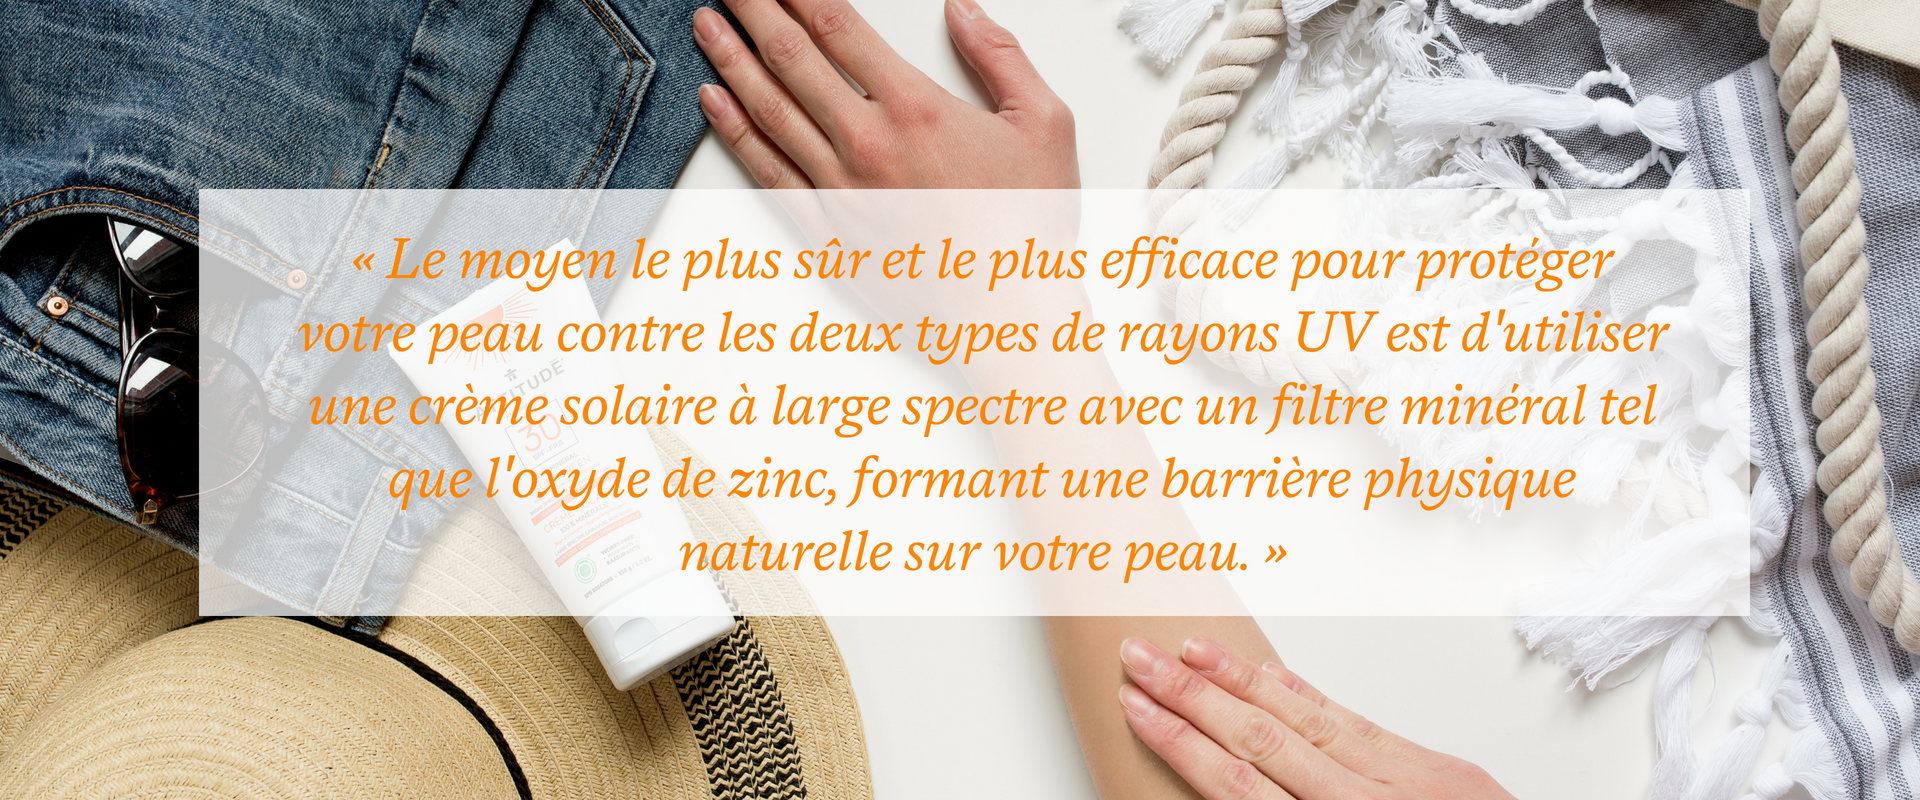 Protection contre les rayons UVA et UVB